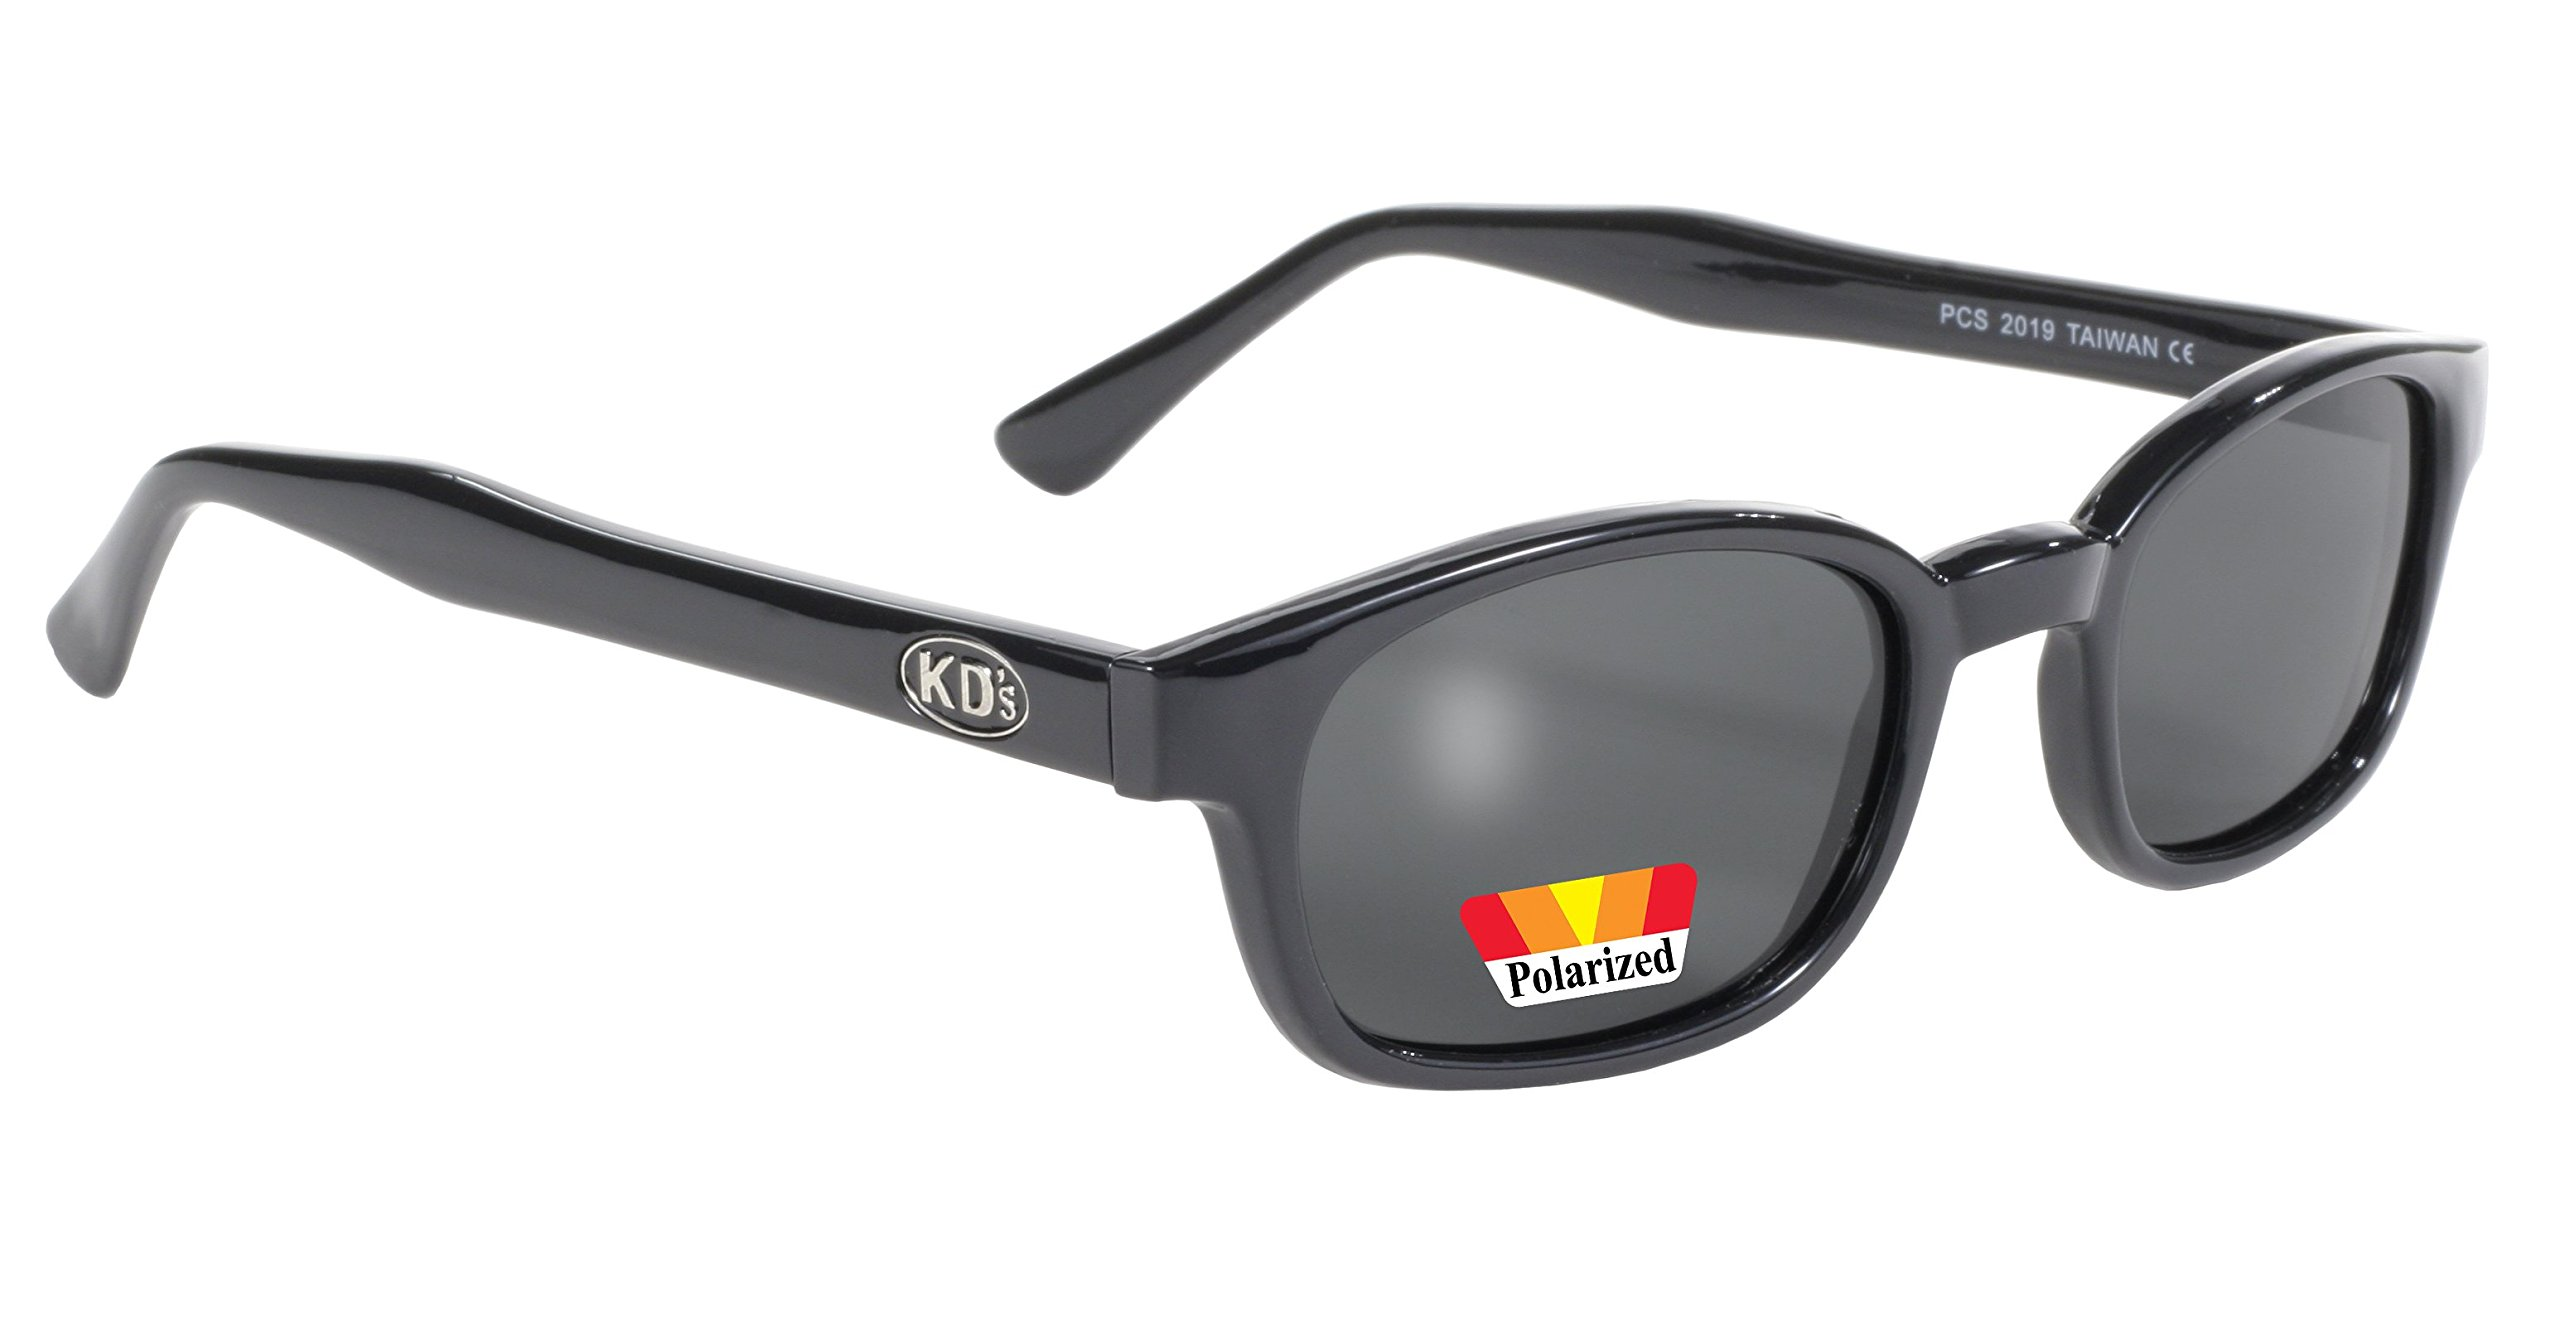 Pacific Coast Original KD's Polarized Biker Sunglasses (Black Frame/Dark Grey Lens)